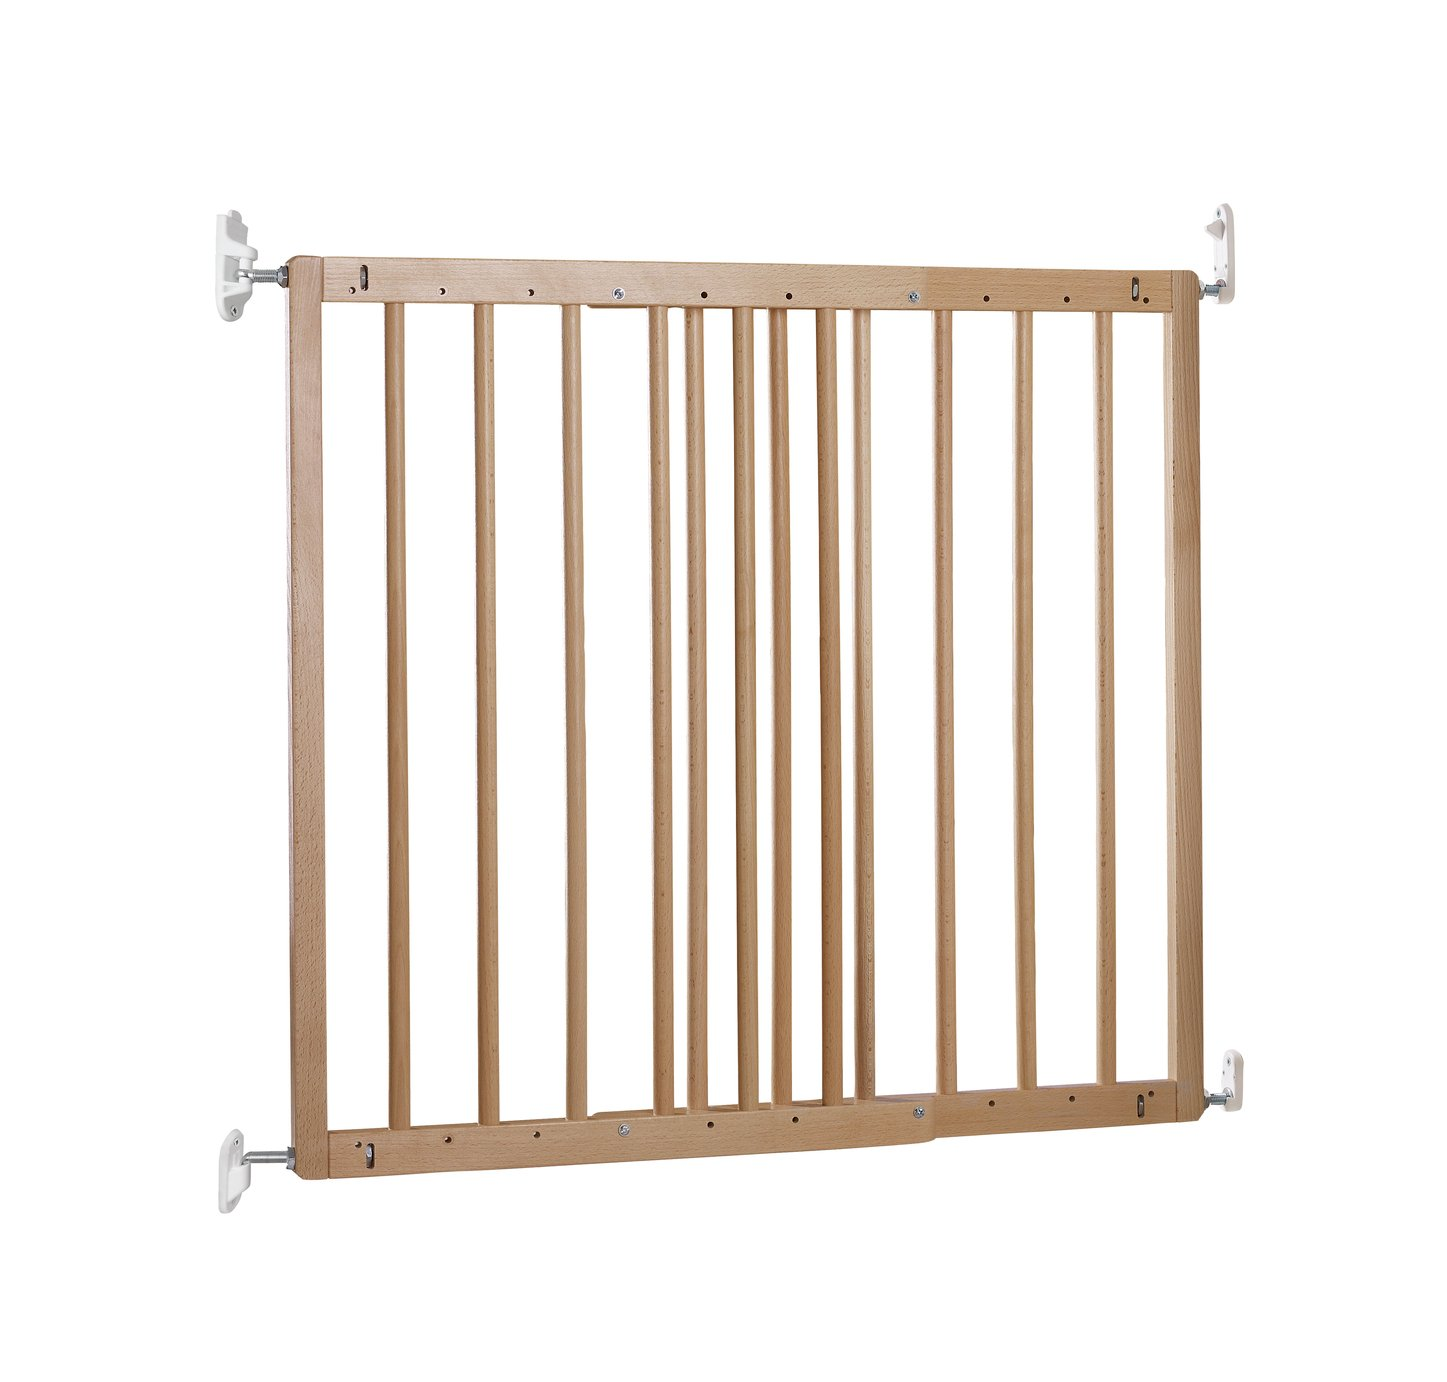 BabyDan Multidan Wooden Extending Safety Gate